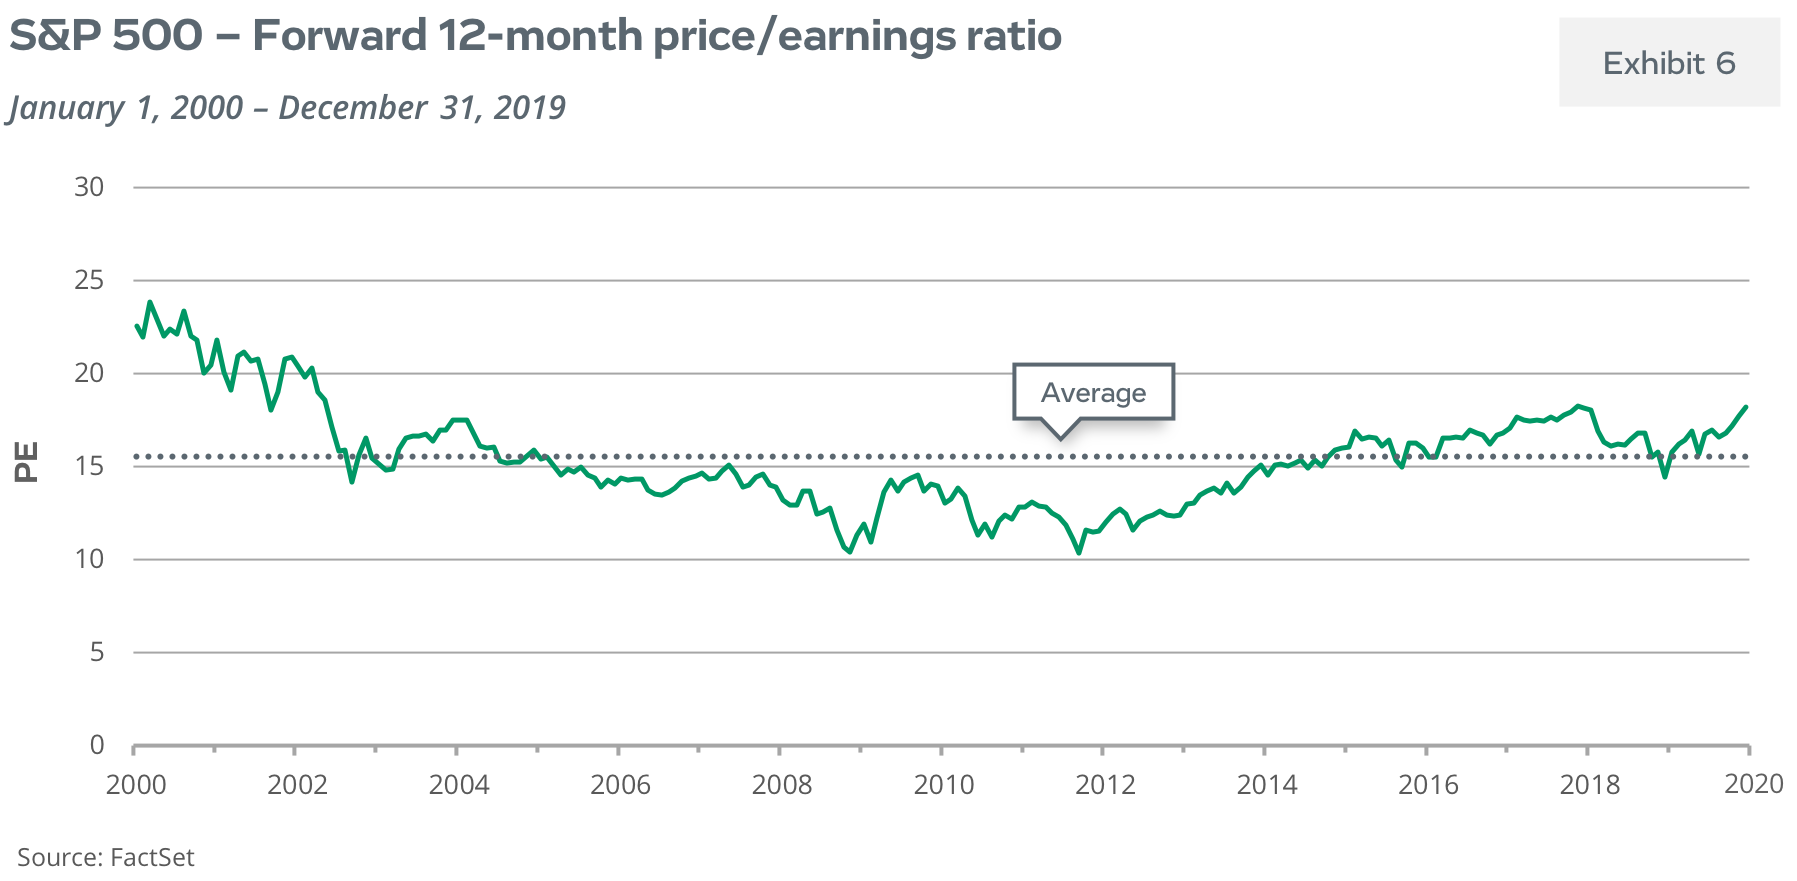 S&P 500 Index - Forward 12 month price/earnings ratio